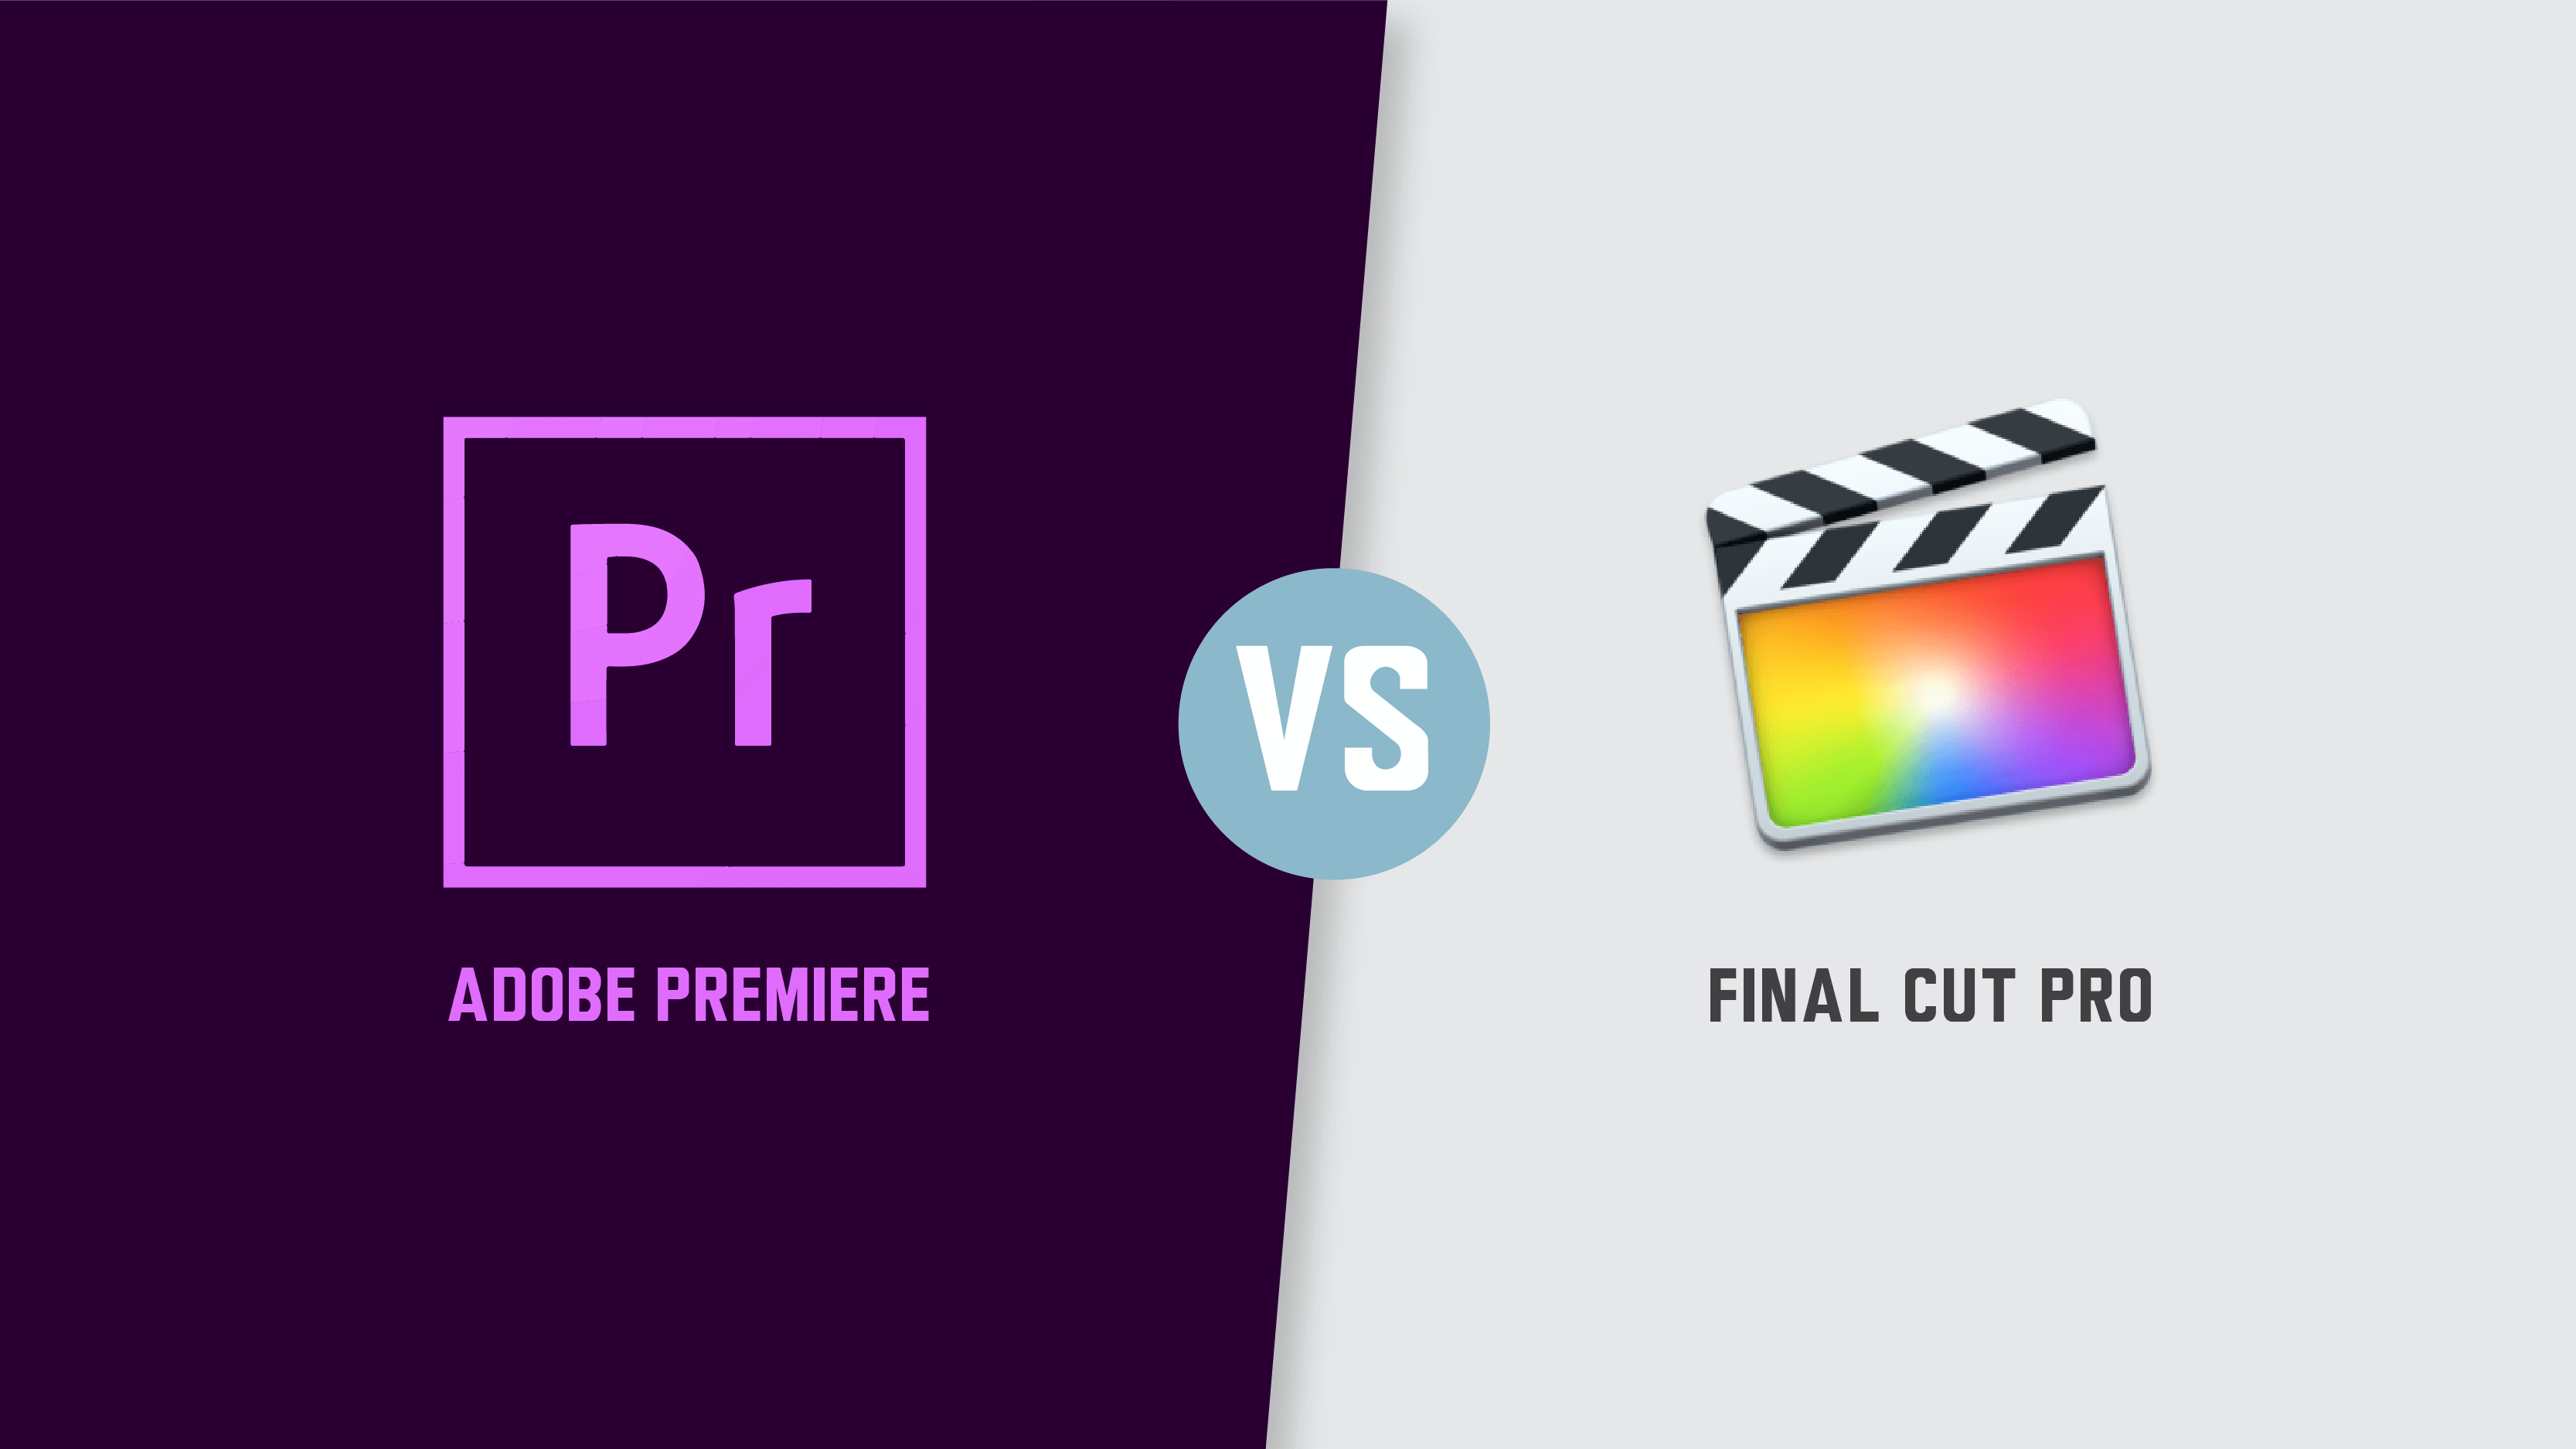 Adobe Premiere vs Final Cut Pro: a Super Practical Comparison | Uscreen